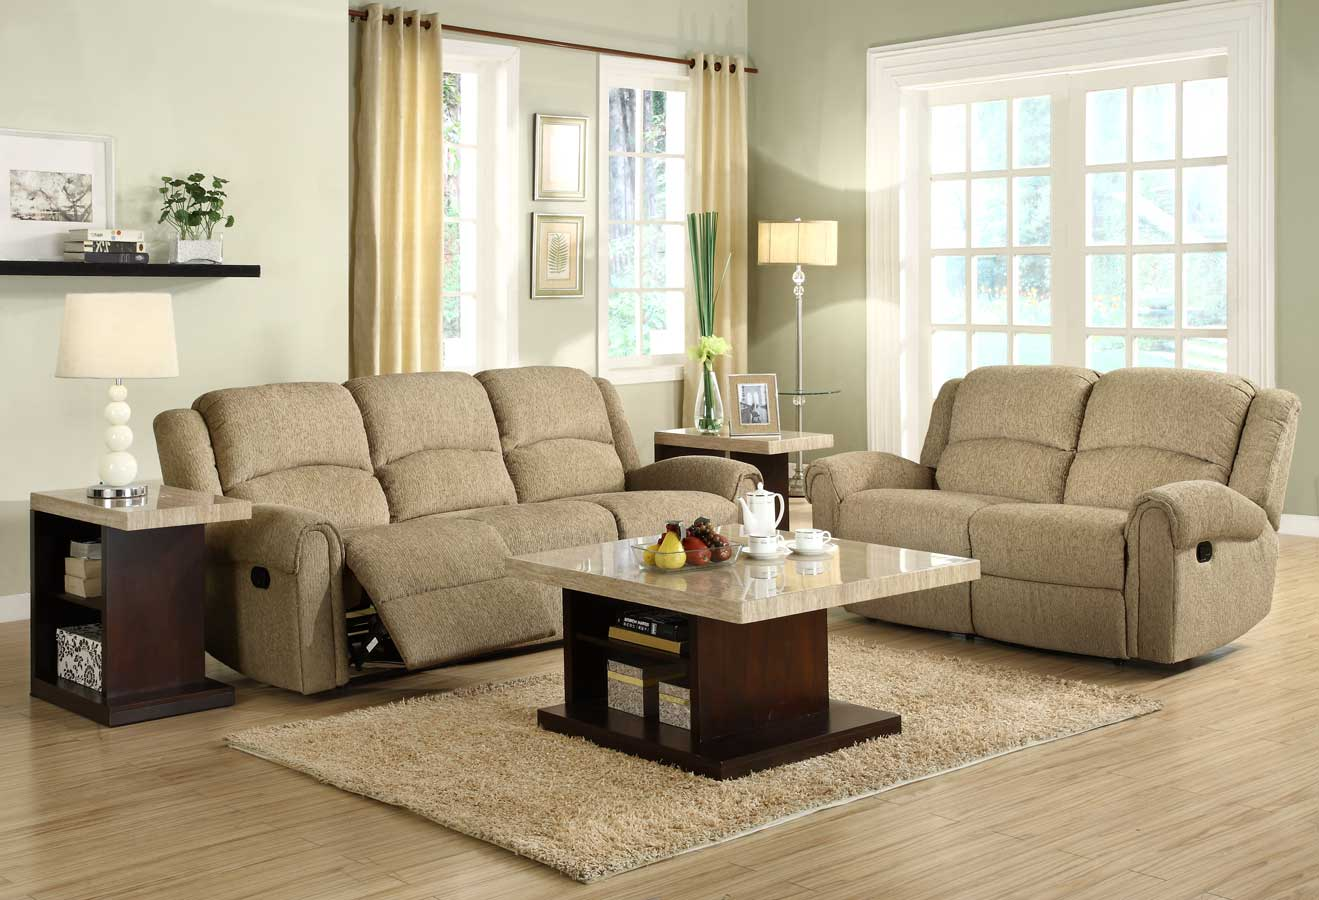 Homelegance Esther Reclining Sofa Set   Beige Chenille